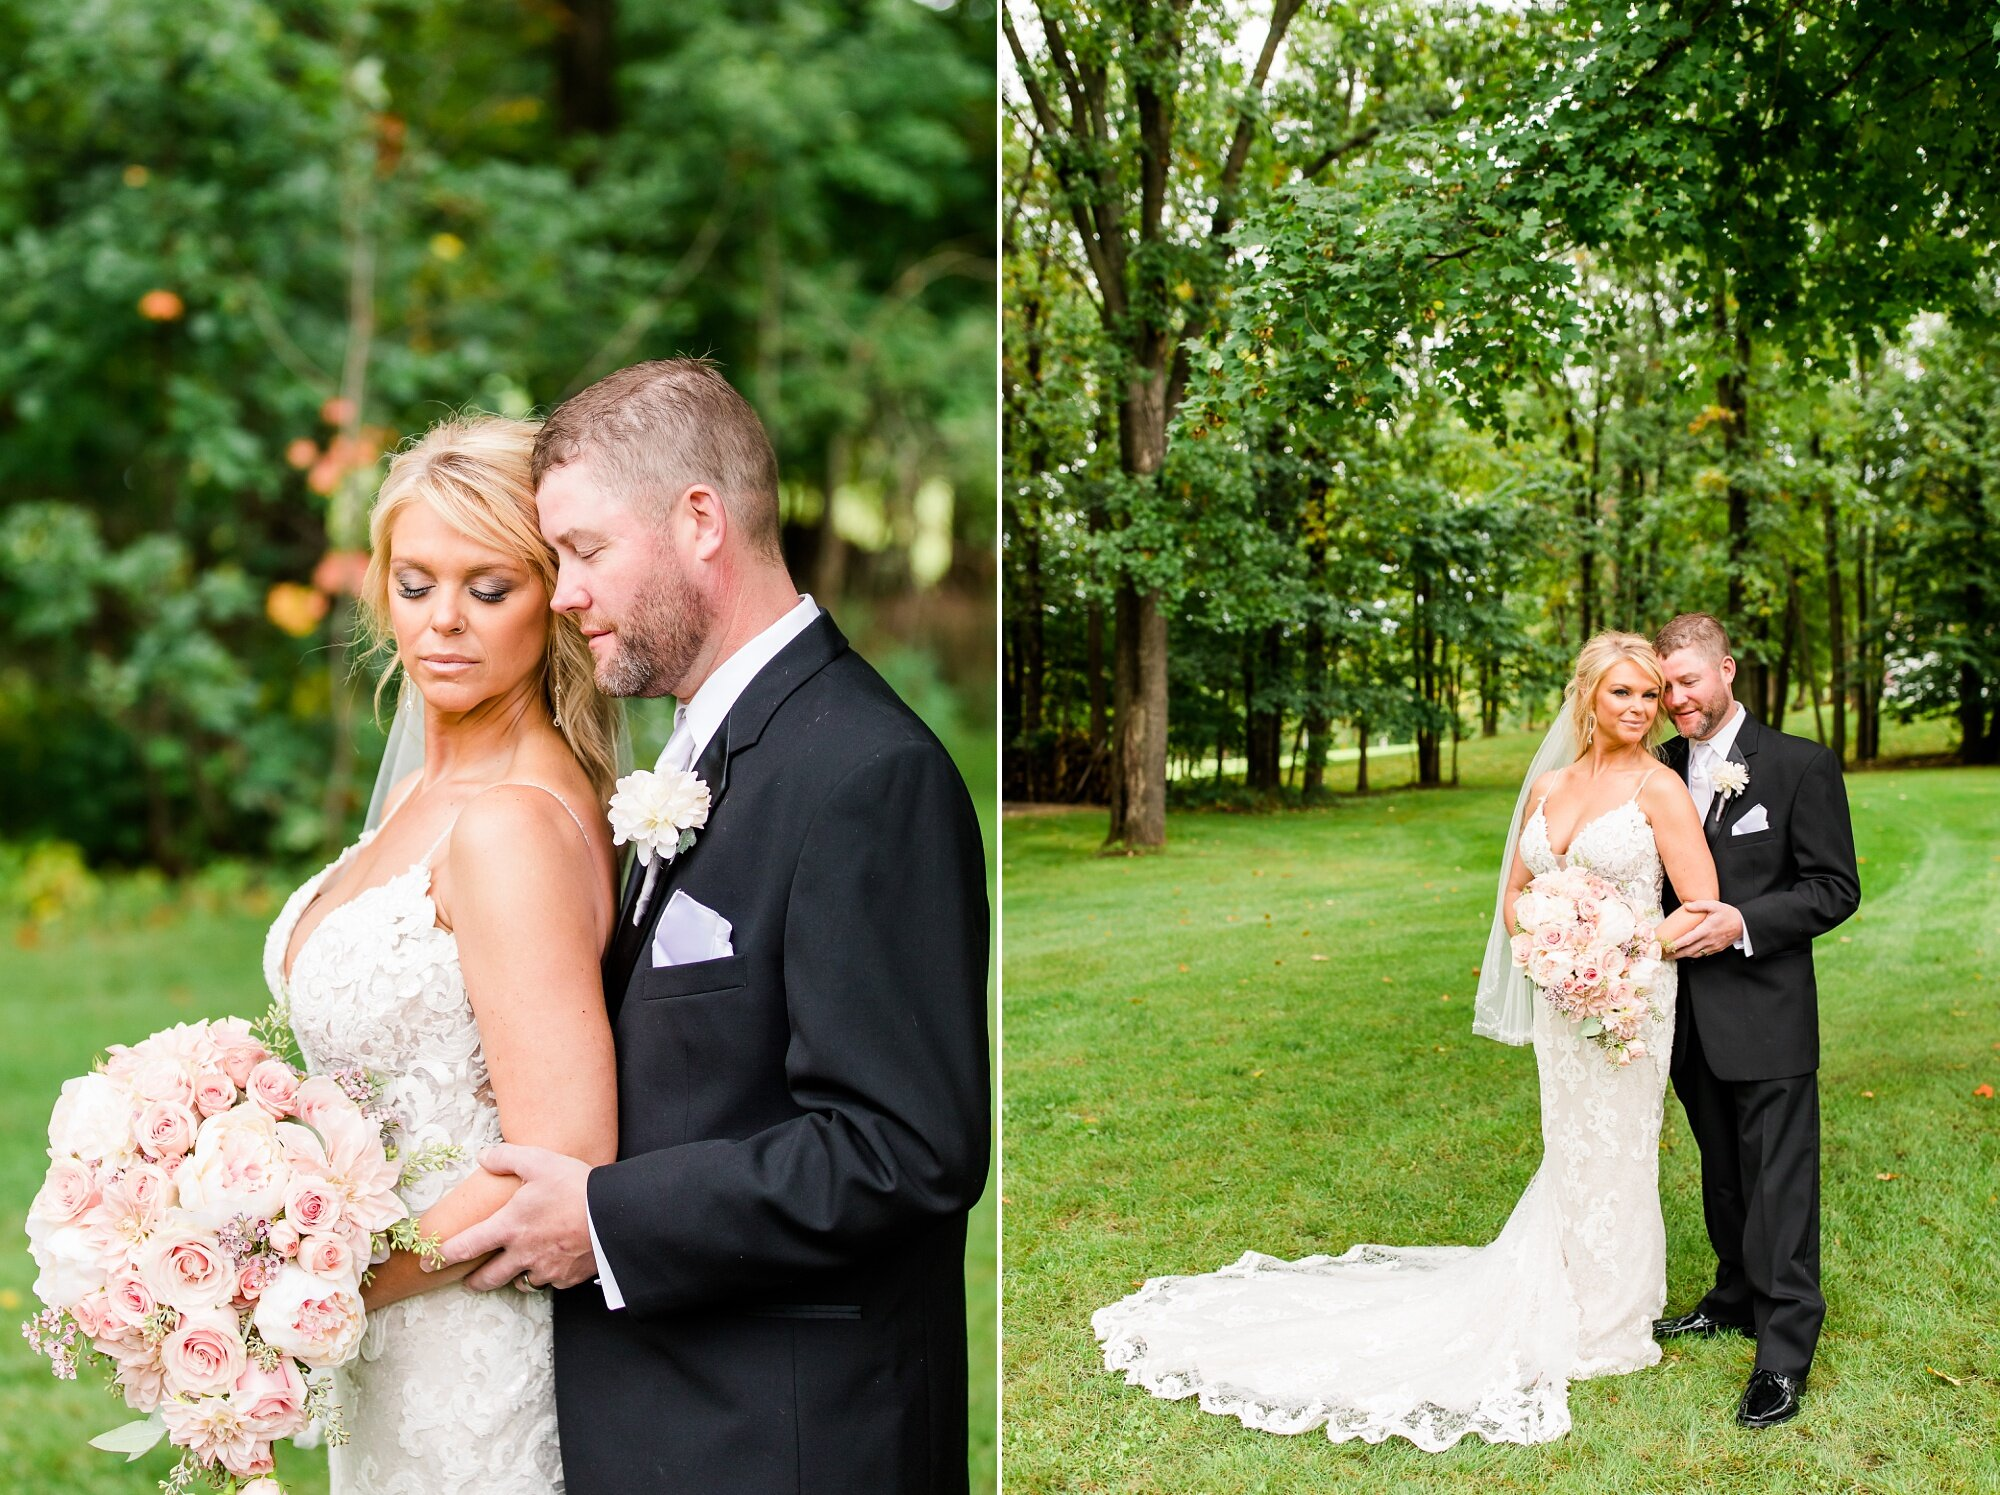 Amber Langerud Photography_Eagle Lake Rustic Styled Outdoor Wedding in Minnesota_6839.jpg